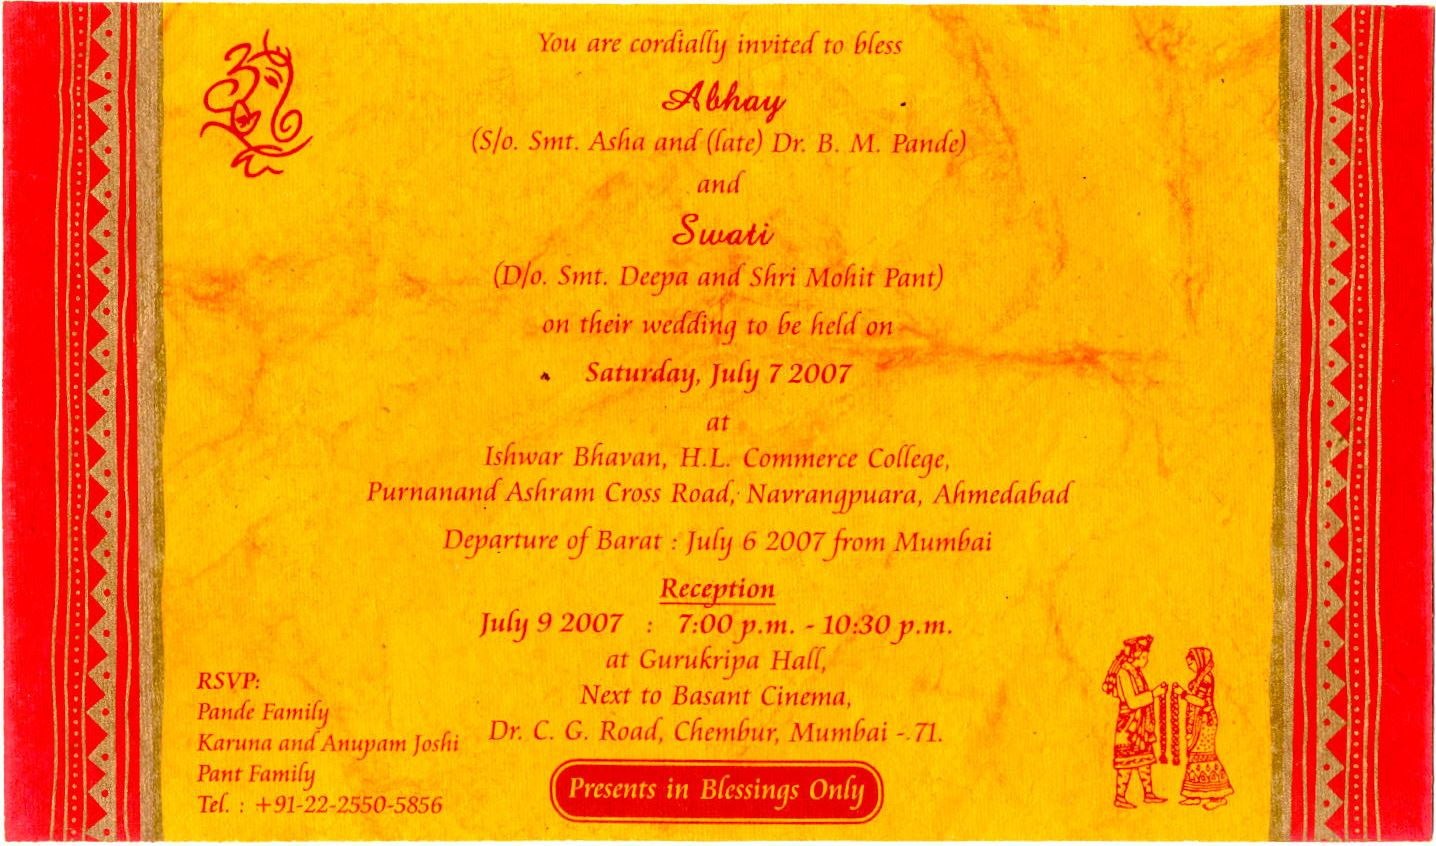 Hindu Wedding Invitation Cards Designs Reference For